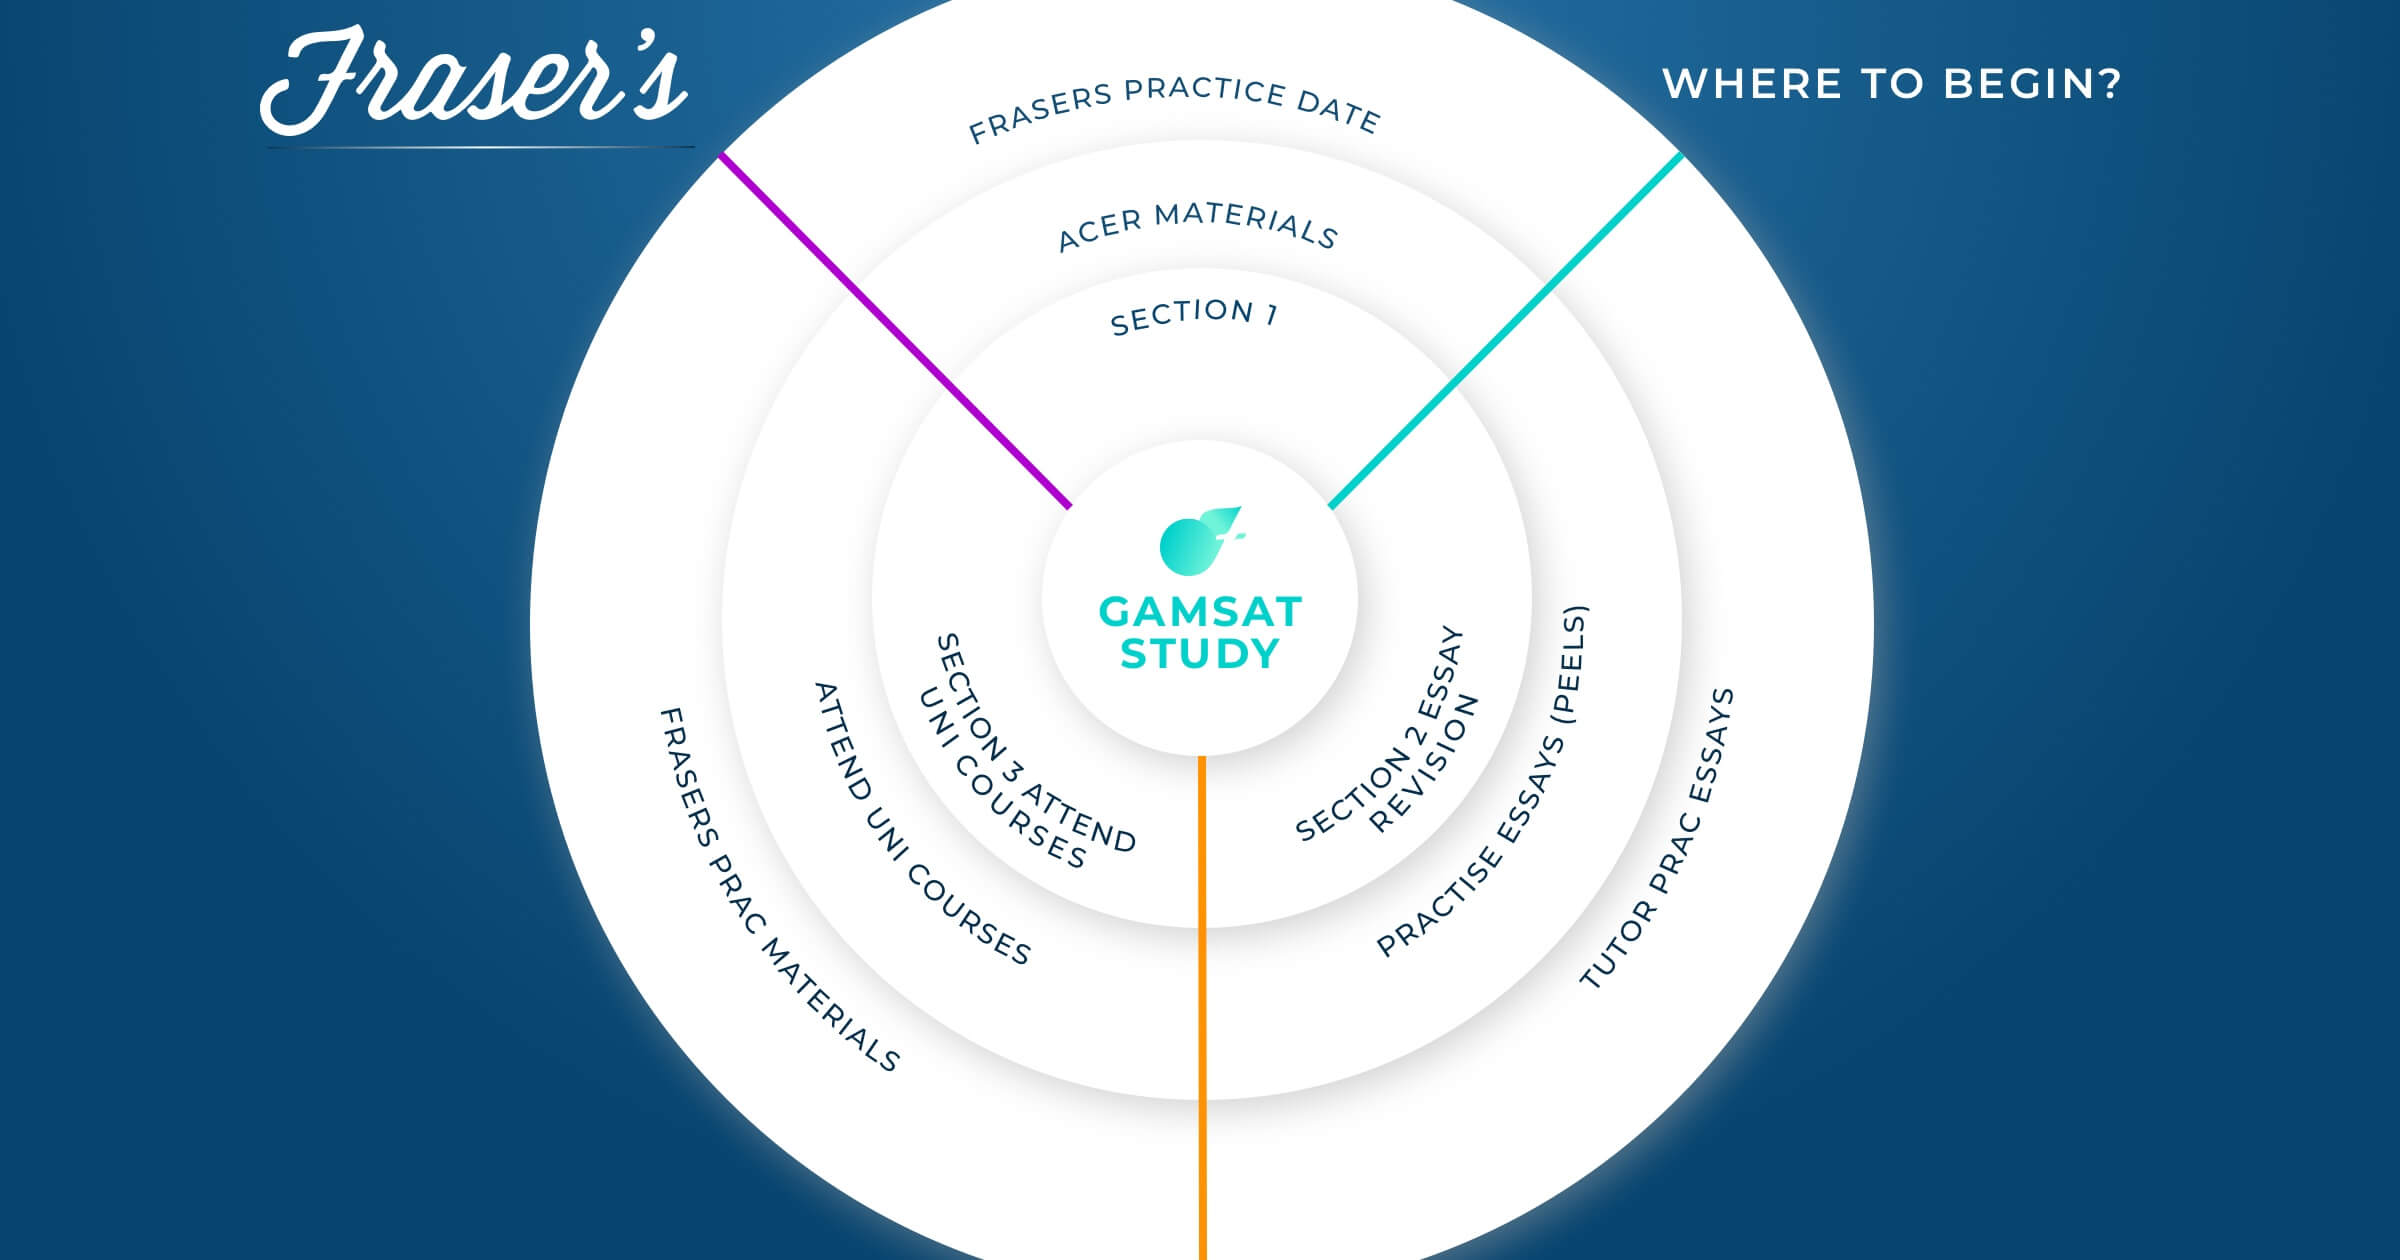 How to prepare for the gamsat - gamsat study